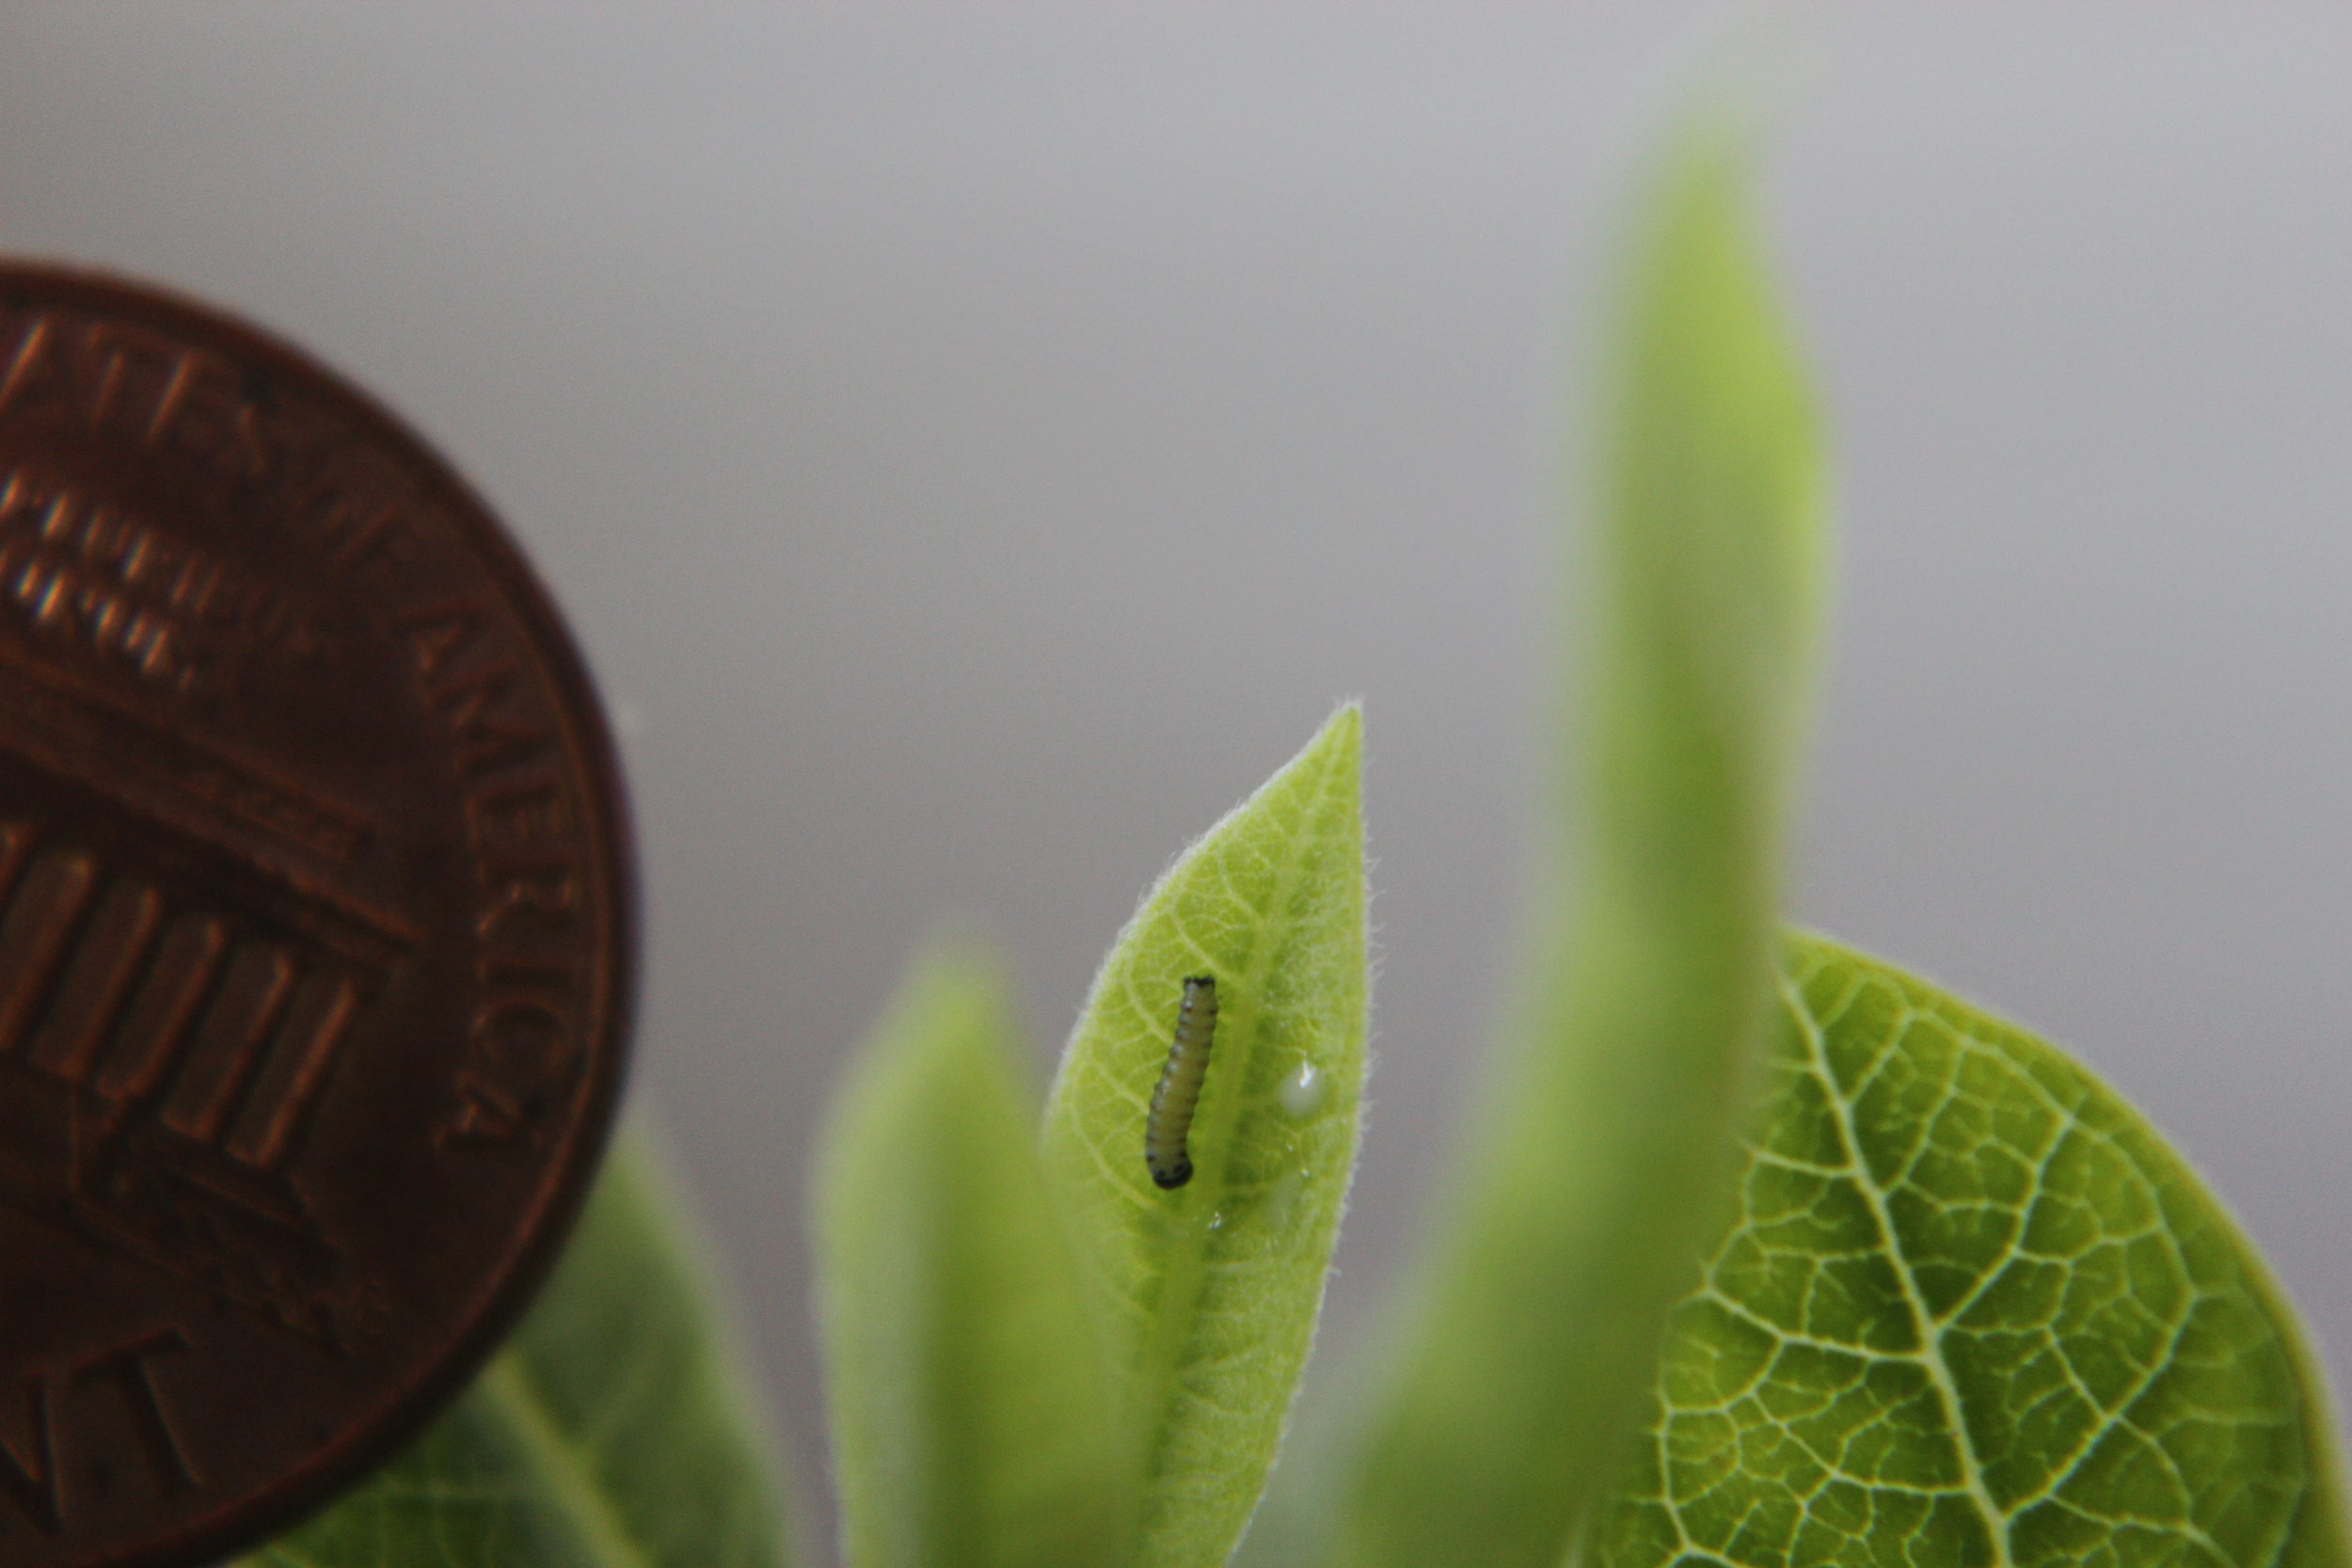 First instar caterpillar and US currency of least value